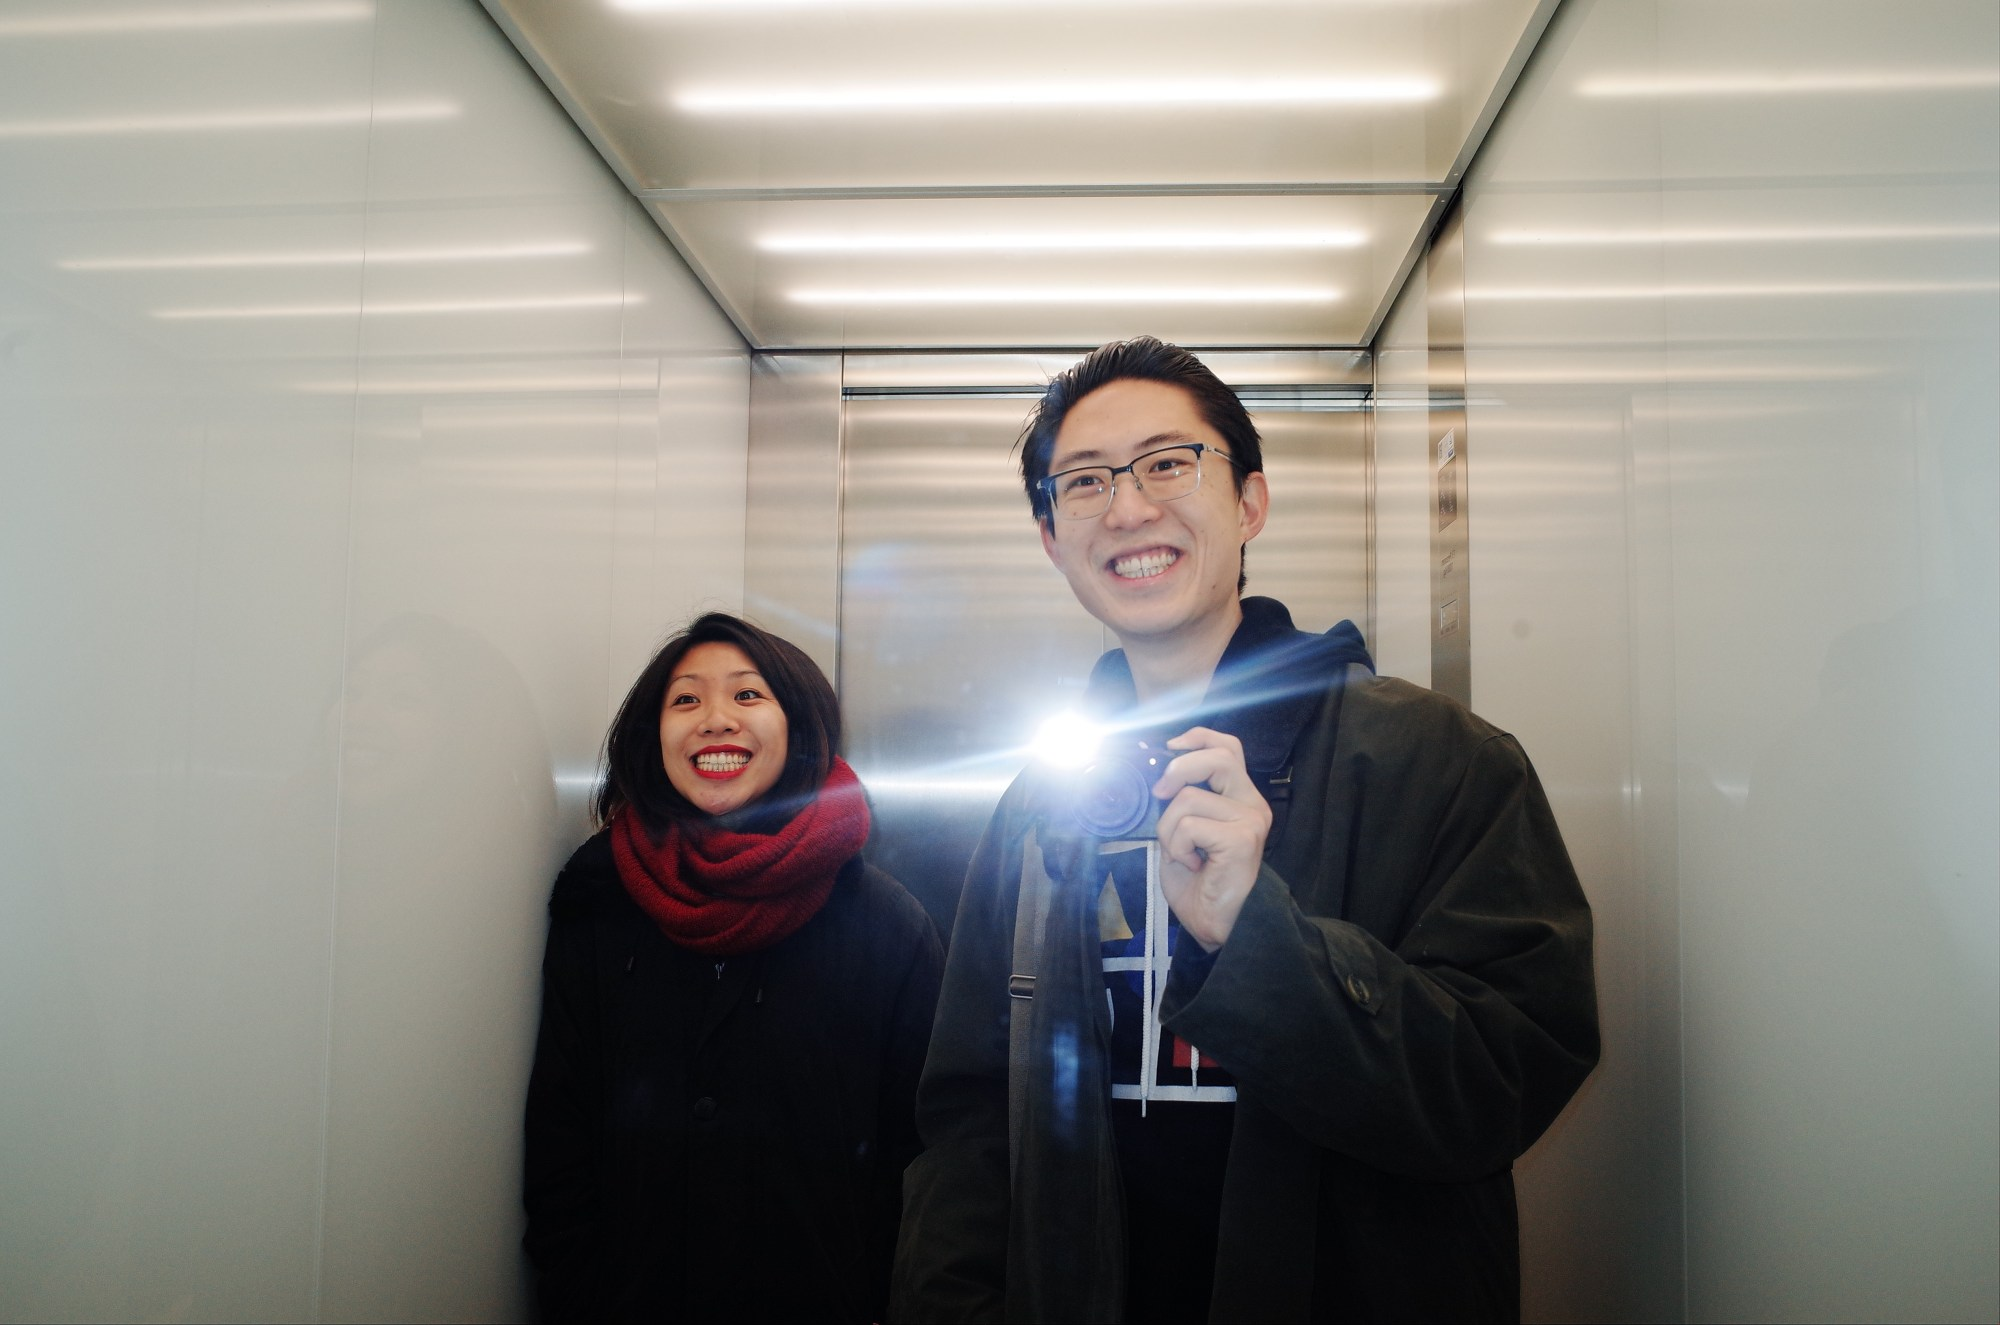 Me and Cindy in elevator. Berlin, 2017